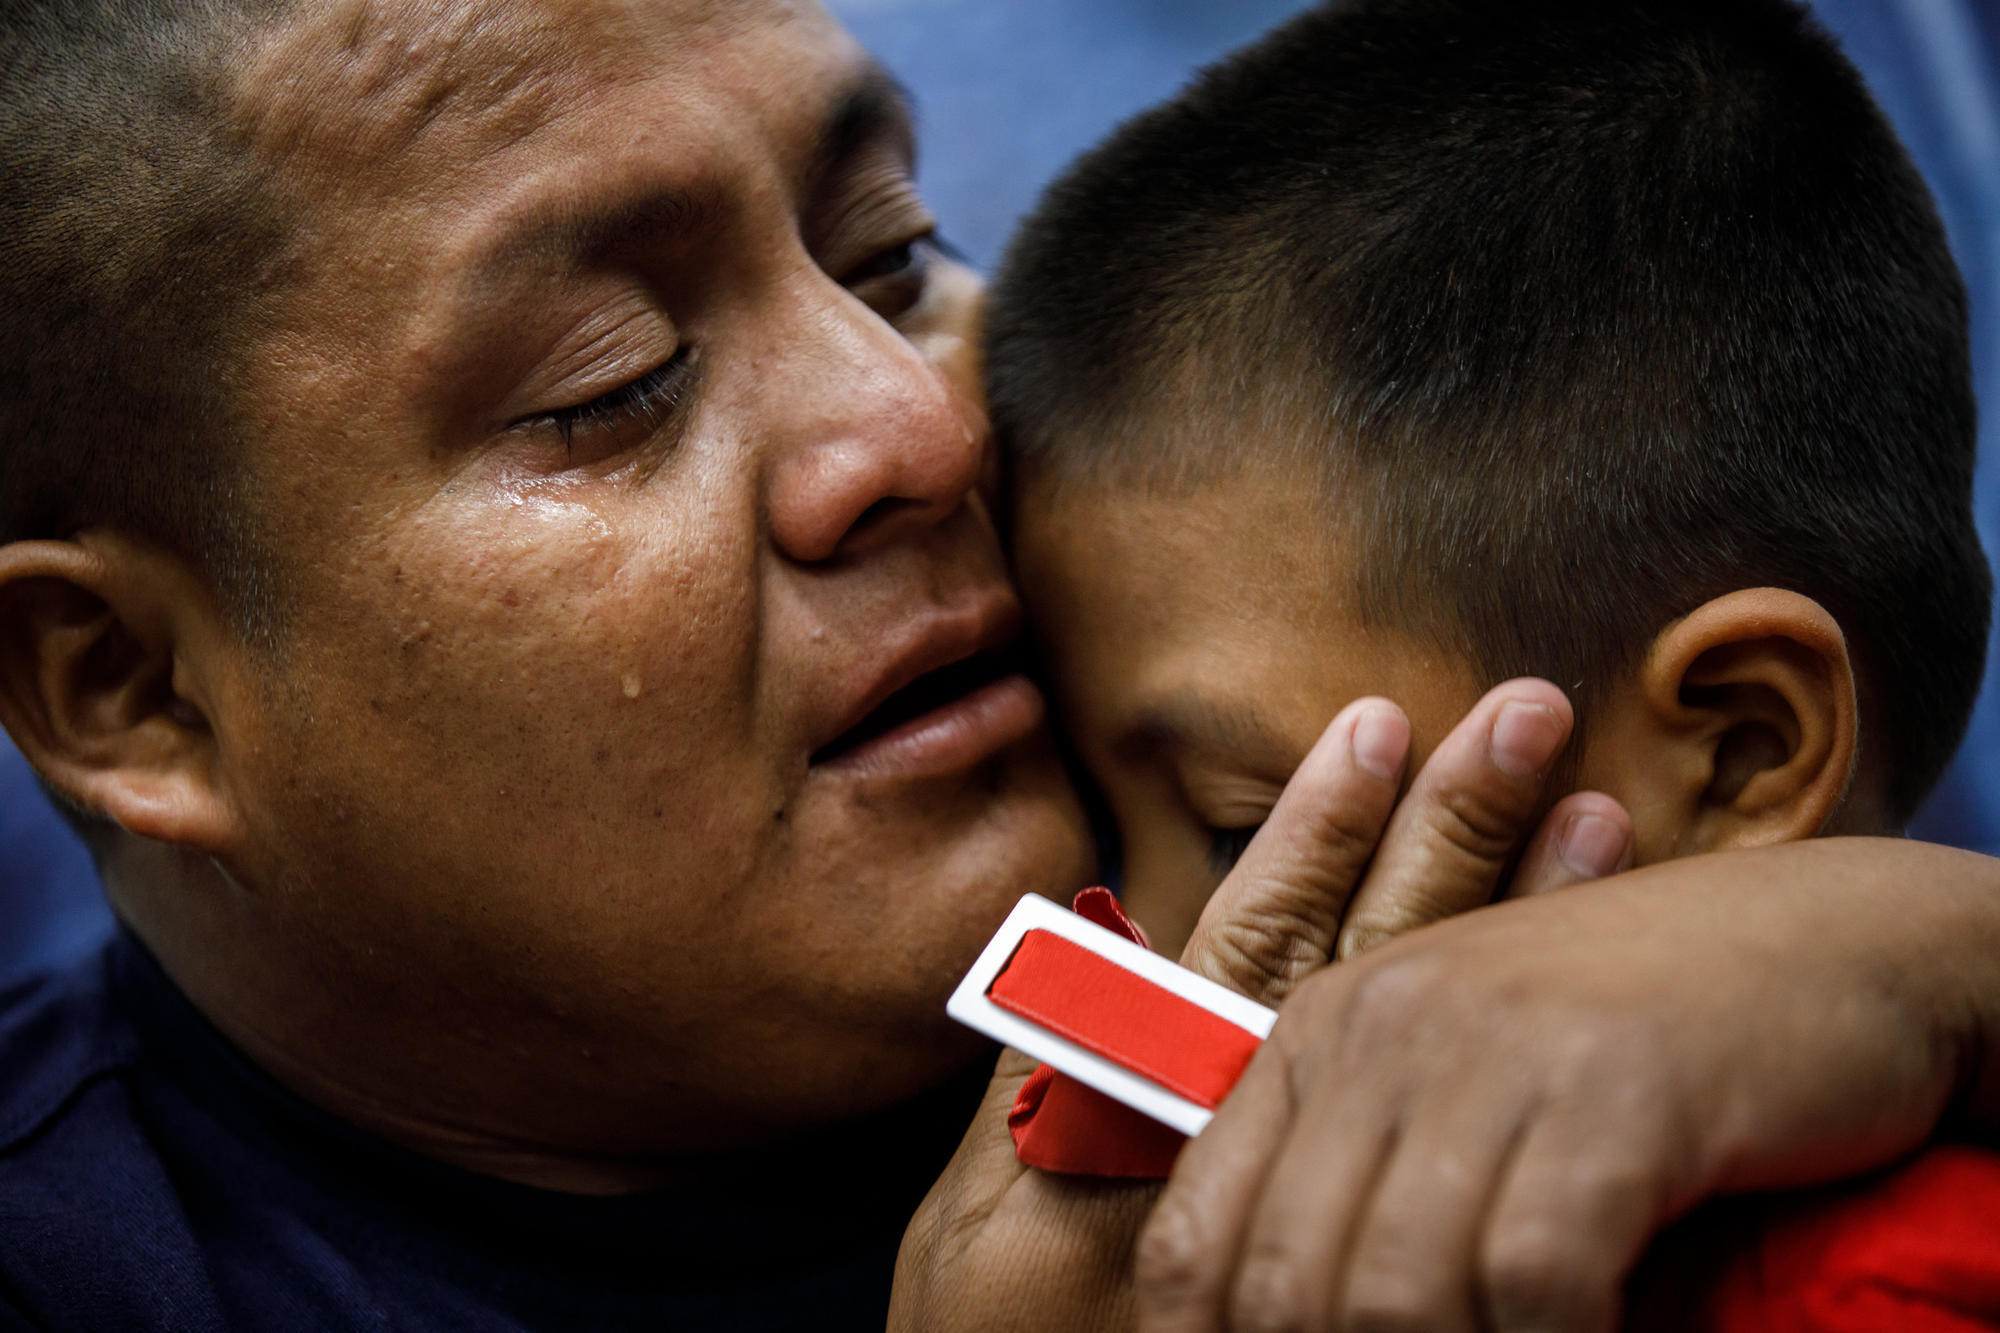 'I'm here. I'm here.' Father reunited with son amid tears, relief and fear of what's next